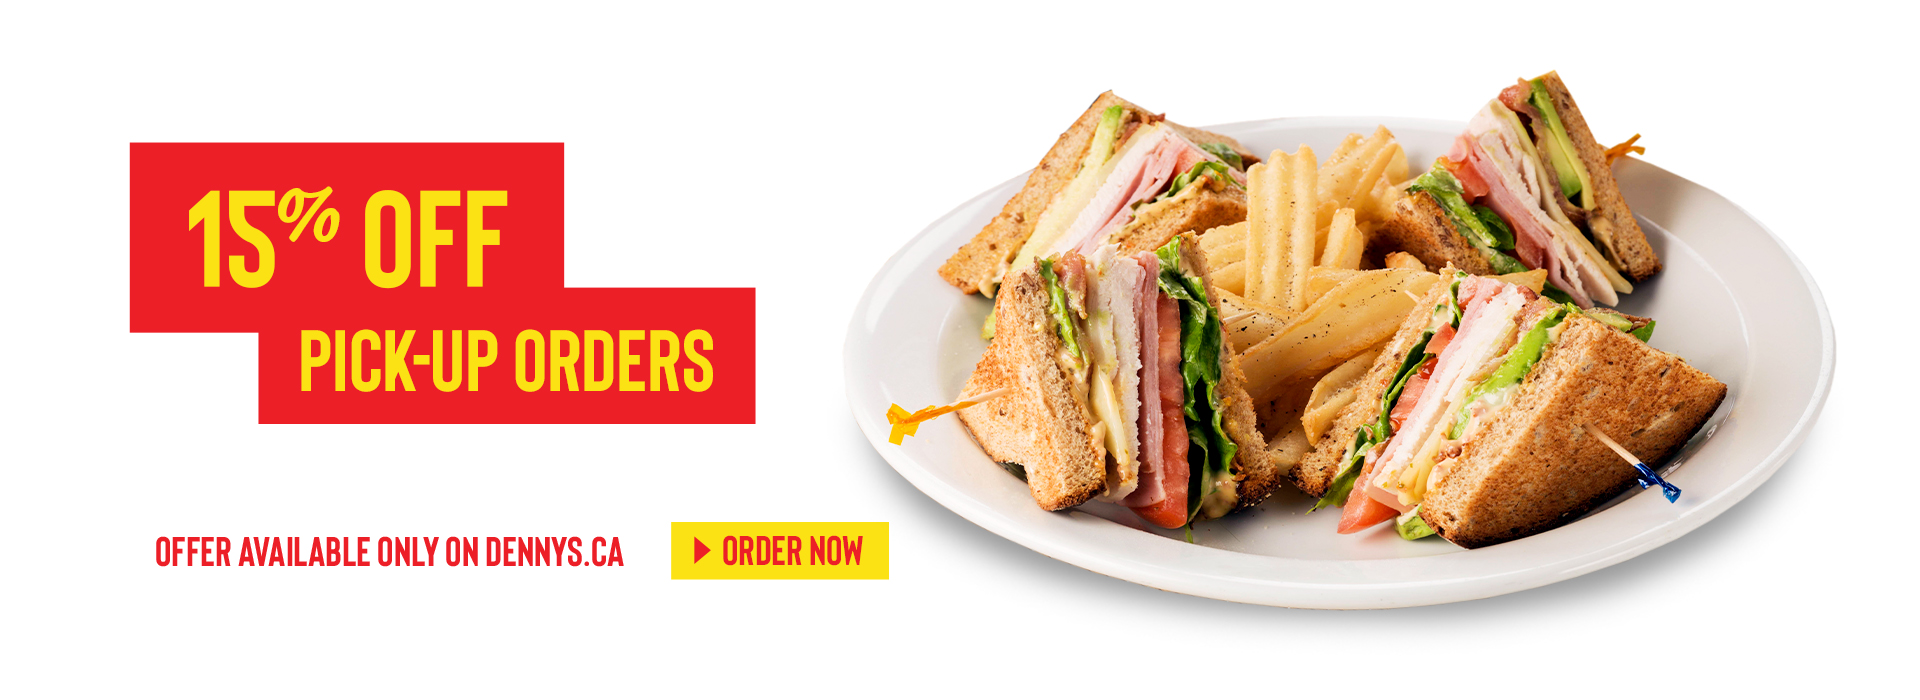 15% Off Food Pick-Up Orders When you Order on Dennys.ca